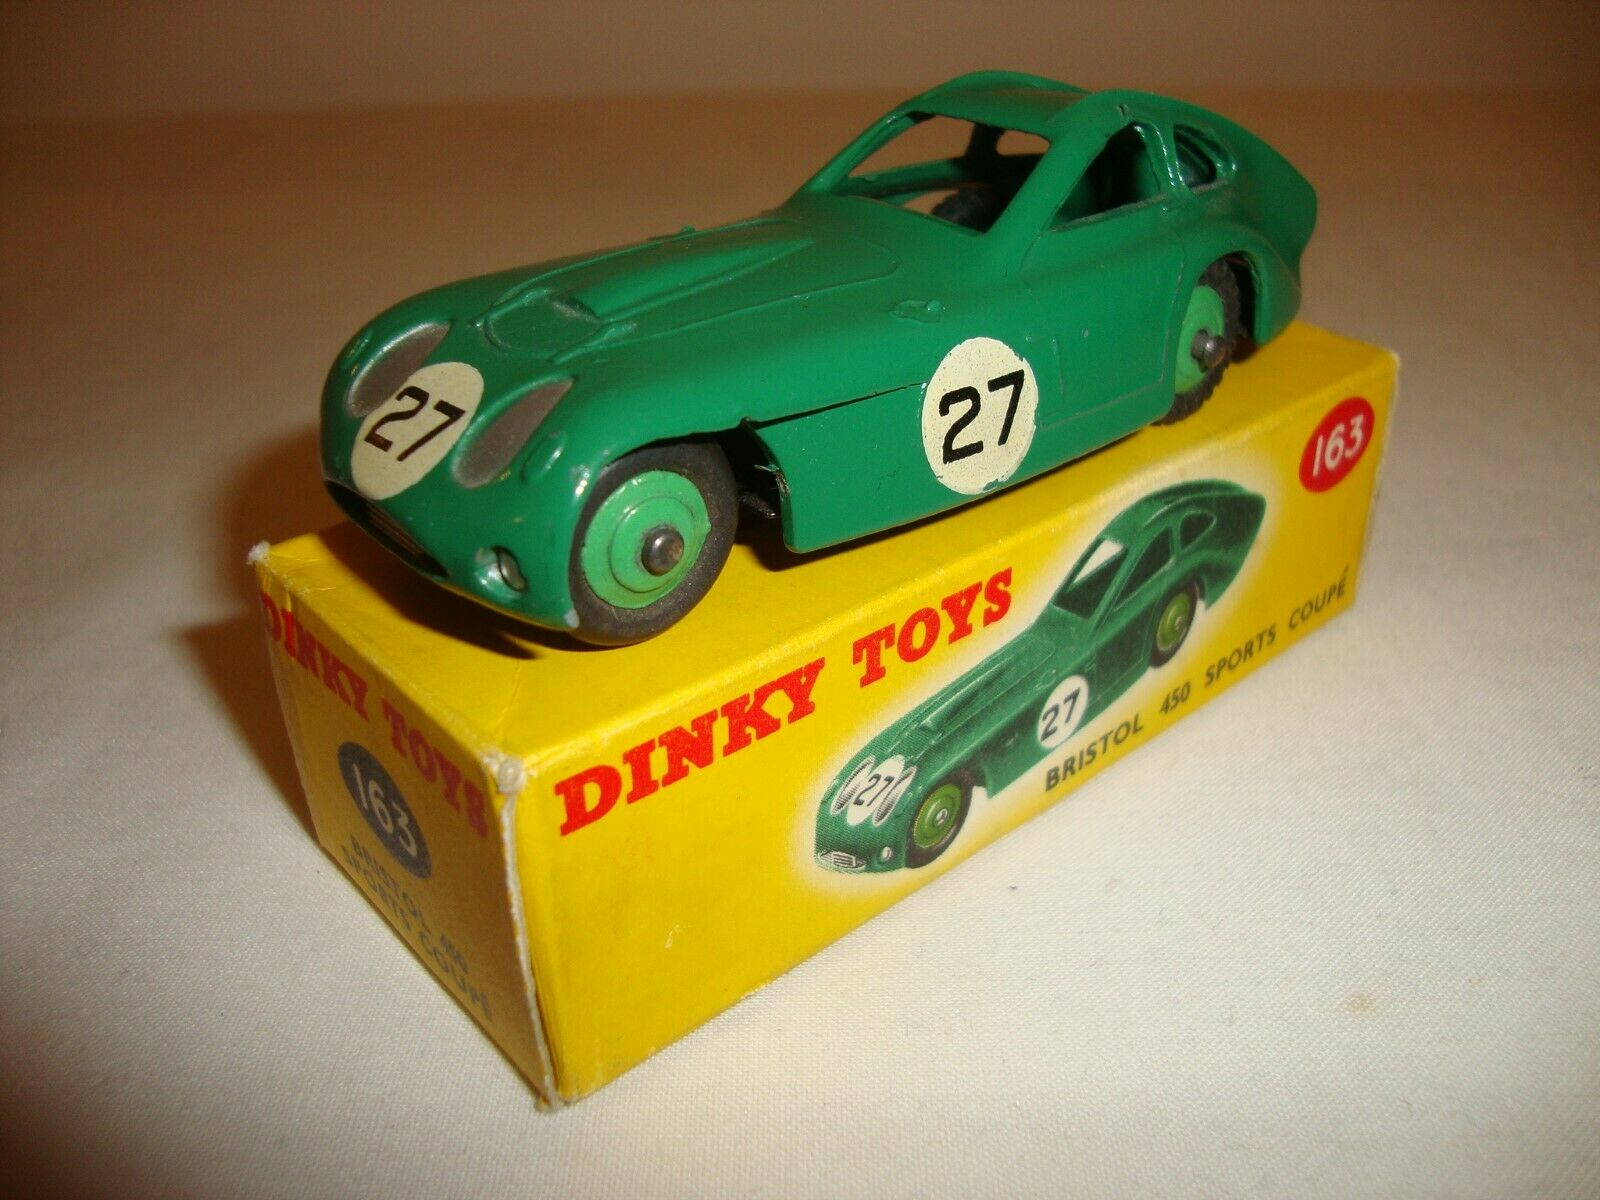 DINKY 163 BRISTOL 450 SPORTS COUPE - VERY GOOD in original BOX